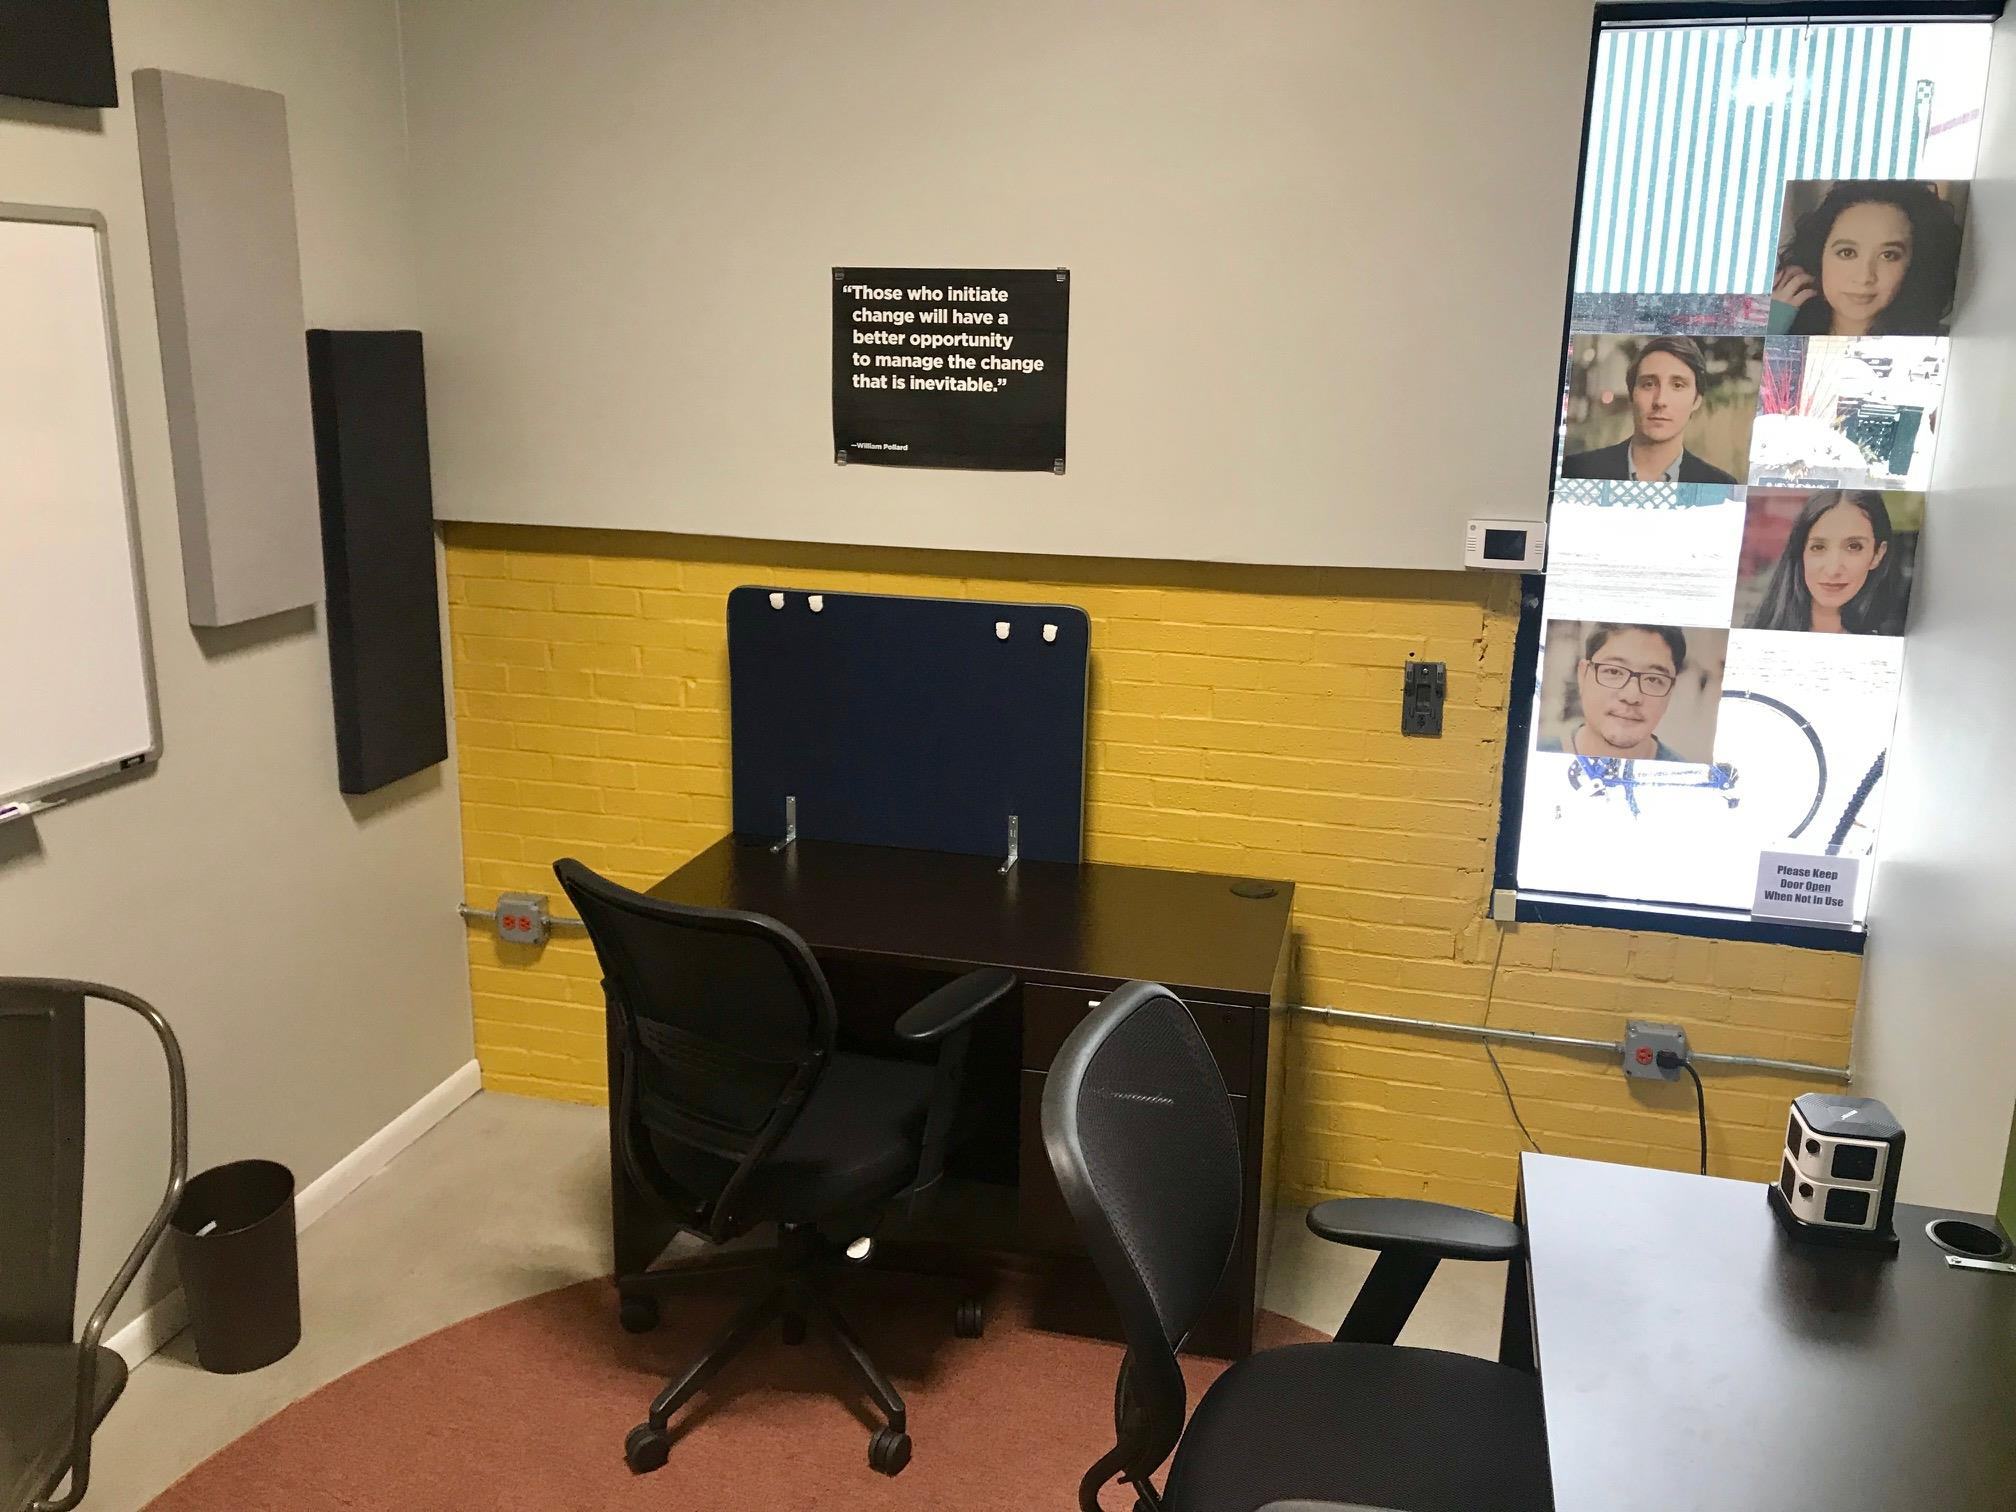 Human Citizen Workplace - Office for 1-2 Person Team